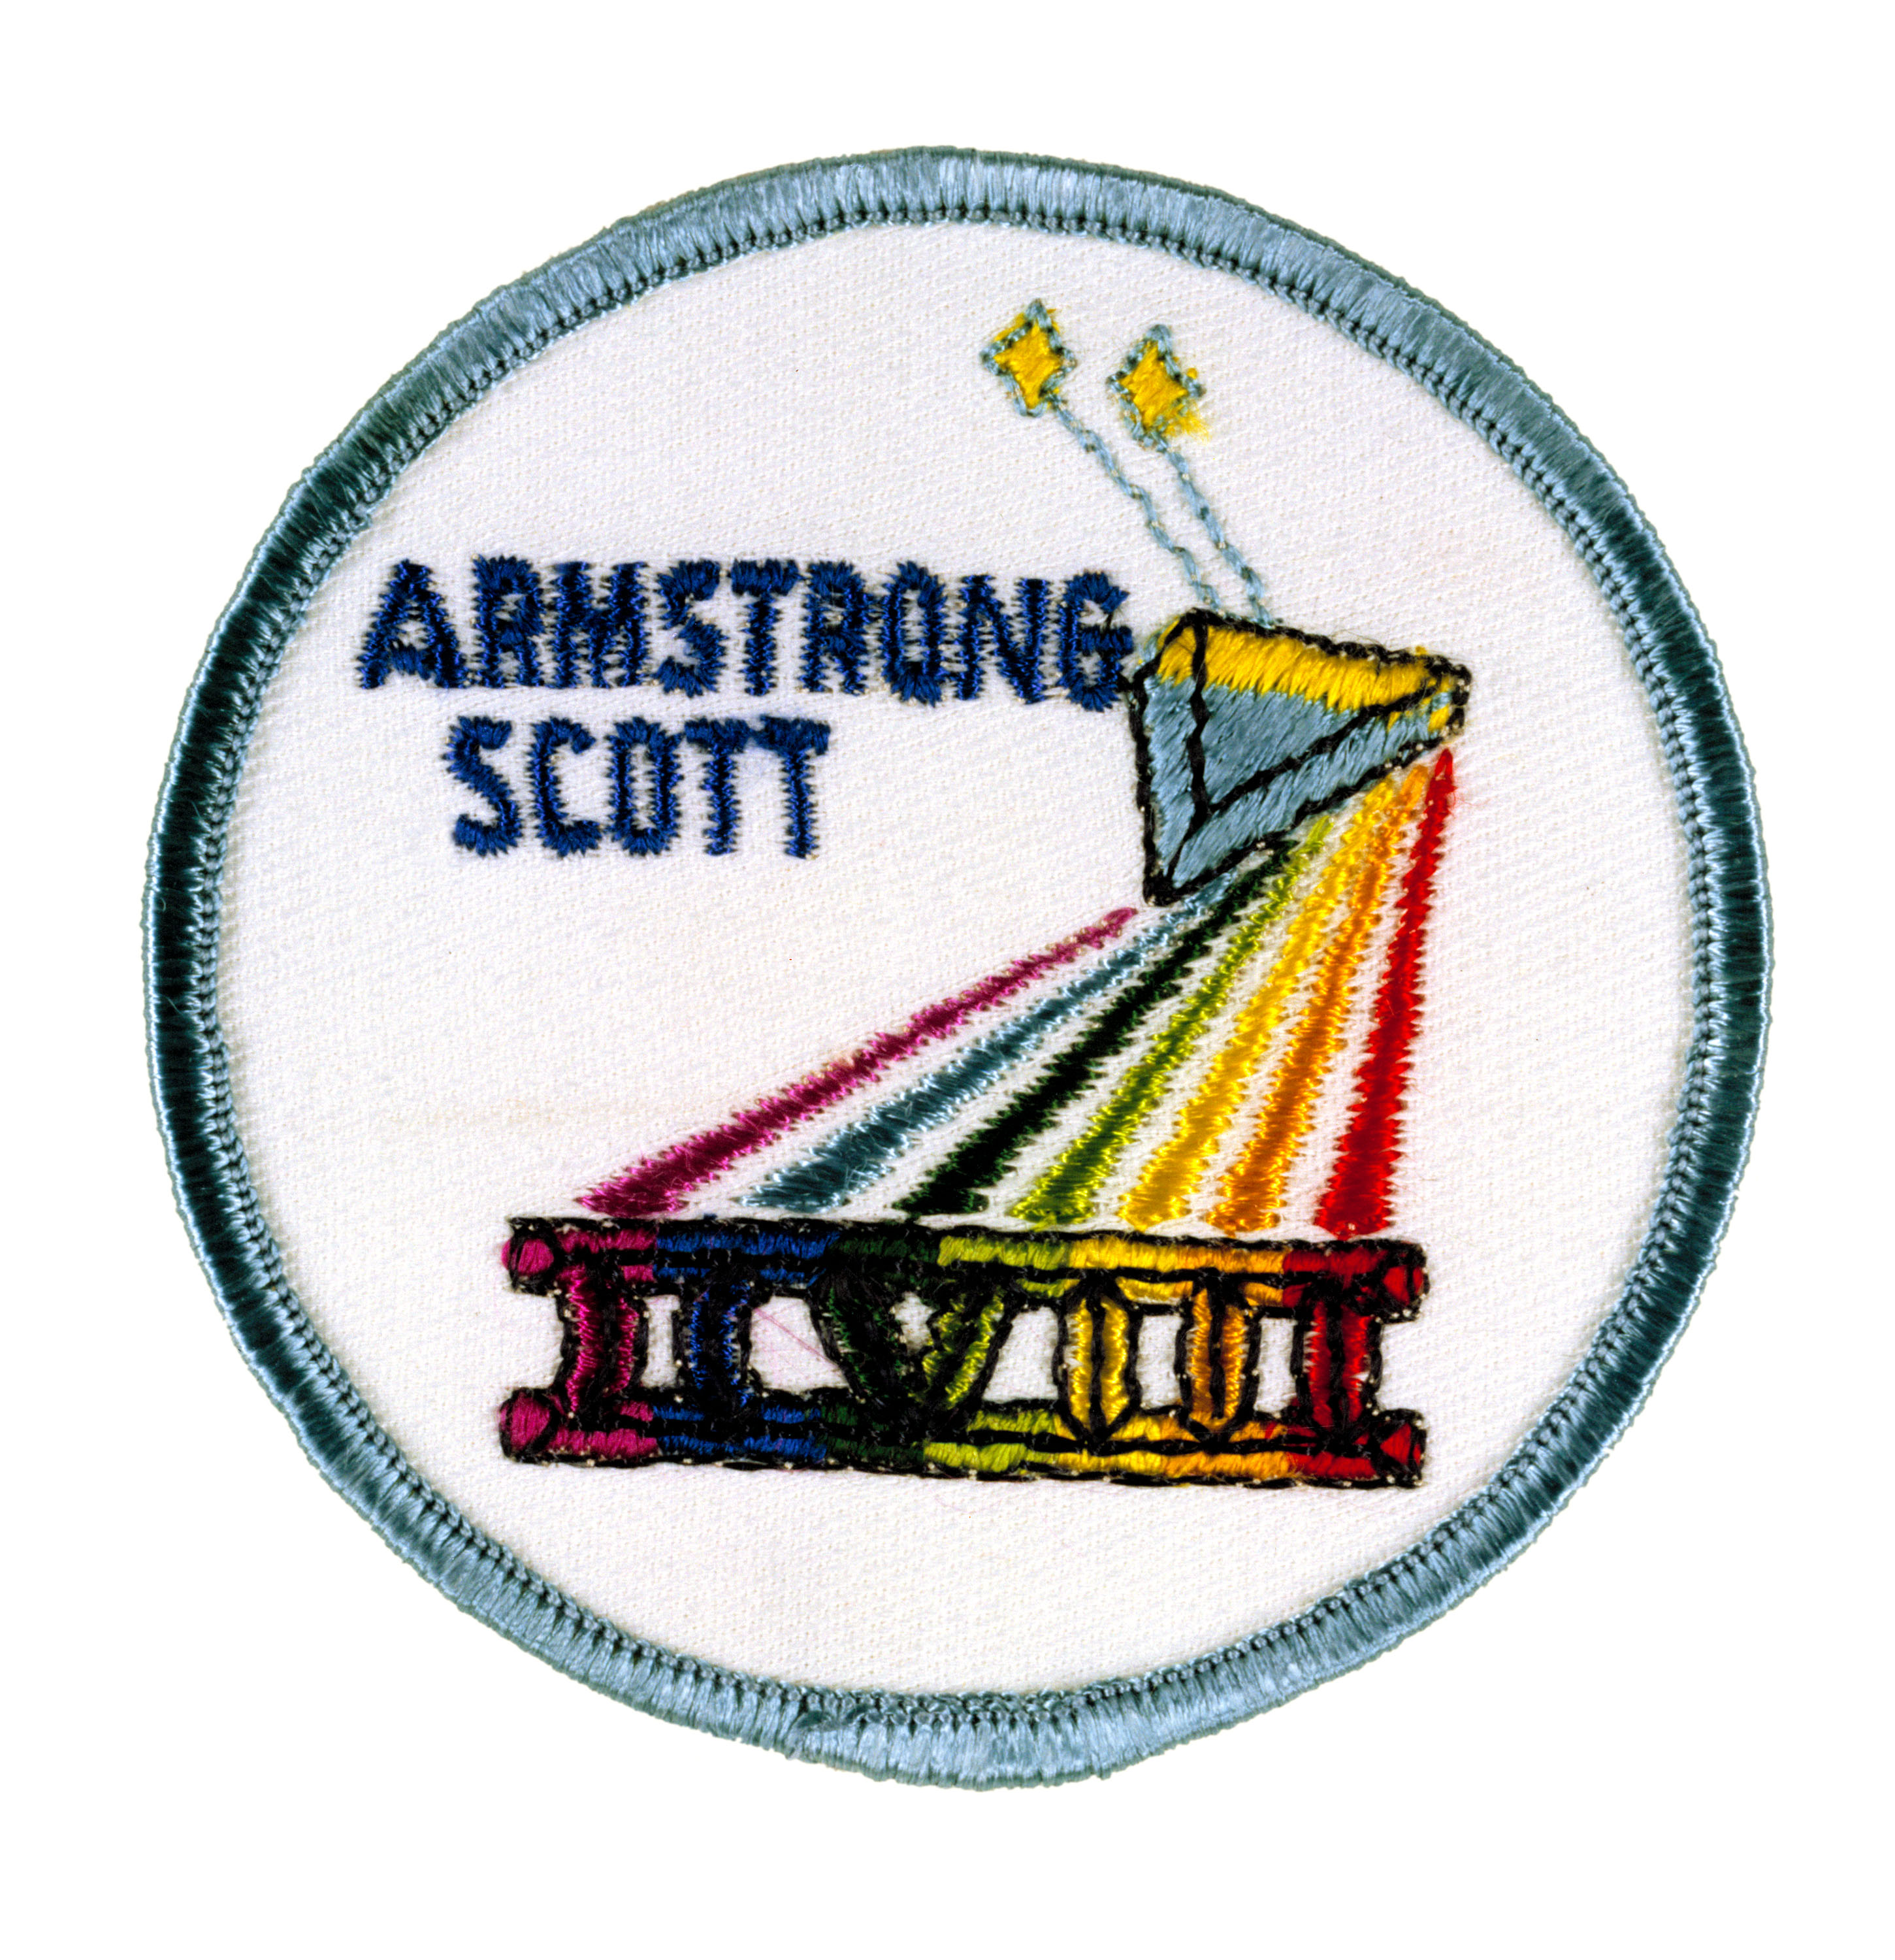 gemini space mission badges - photo #10